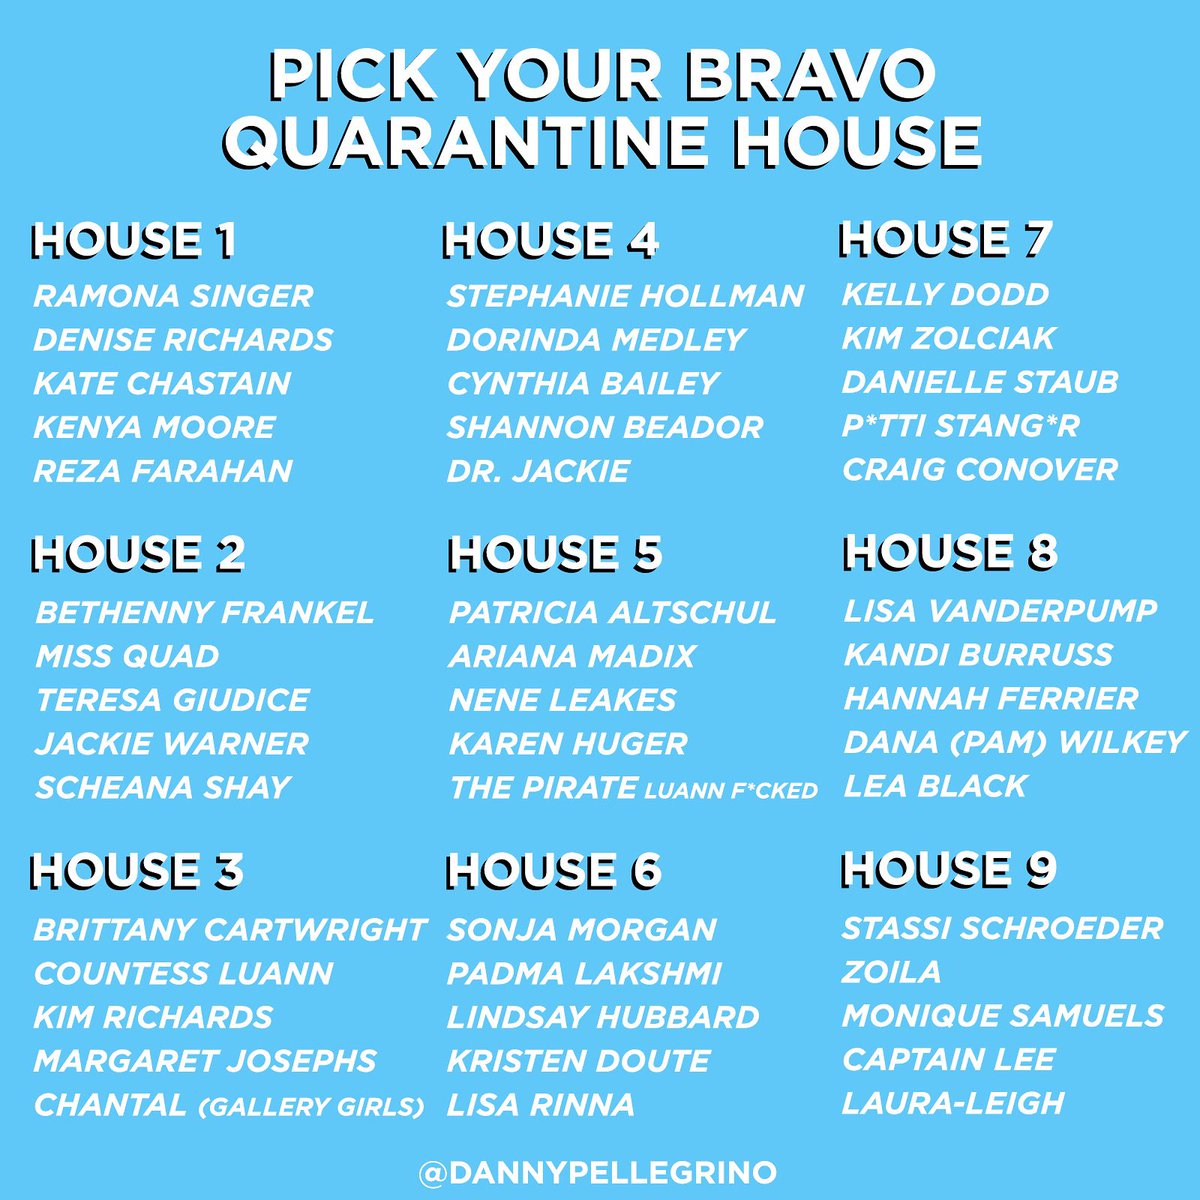 Where would you guys want to stay? I think I'd choose HOUSE #5 because I have questions for the pirate.  <br>http://pic.twitter.com/SPApjONwAb